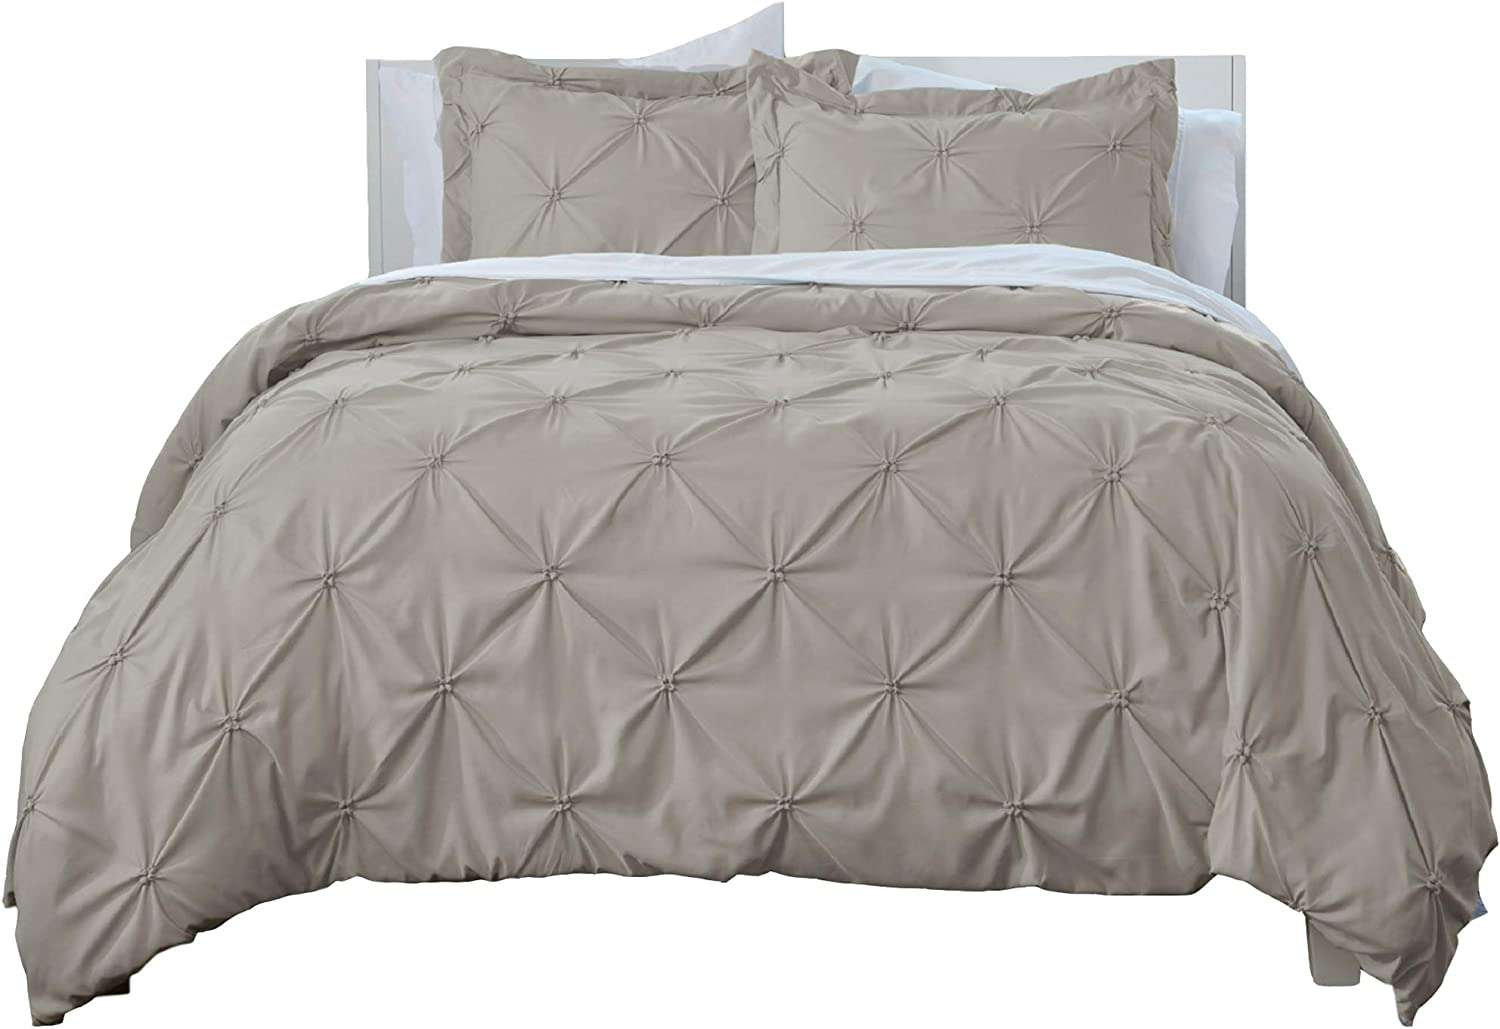 Signature Pinch Pleated Pintuck Duvet Cover 3 Piece Set with Button Closure. Luxuriously Soft 100% Brushed Microfiber with Textured Pintuck Pleats and Corner Ties (Full/Queen, Taupe)